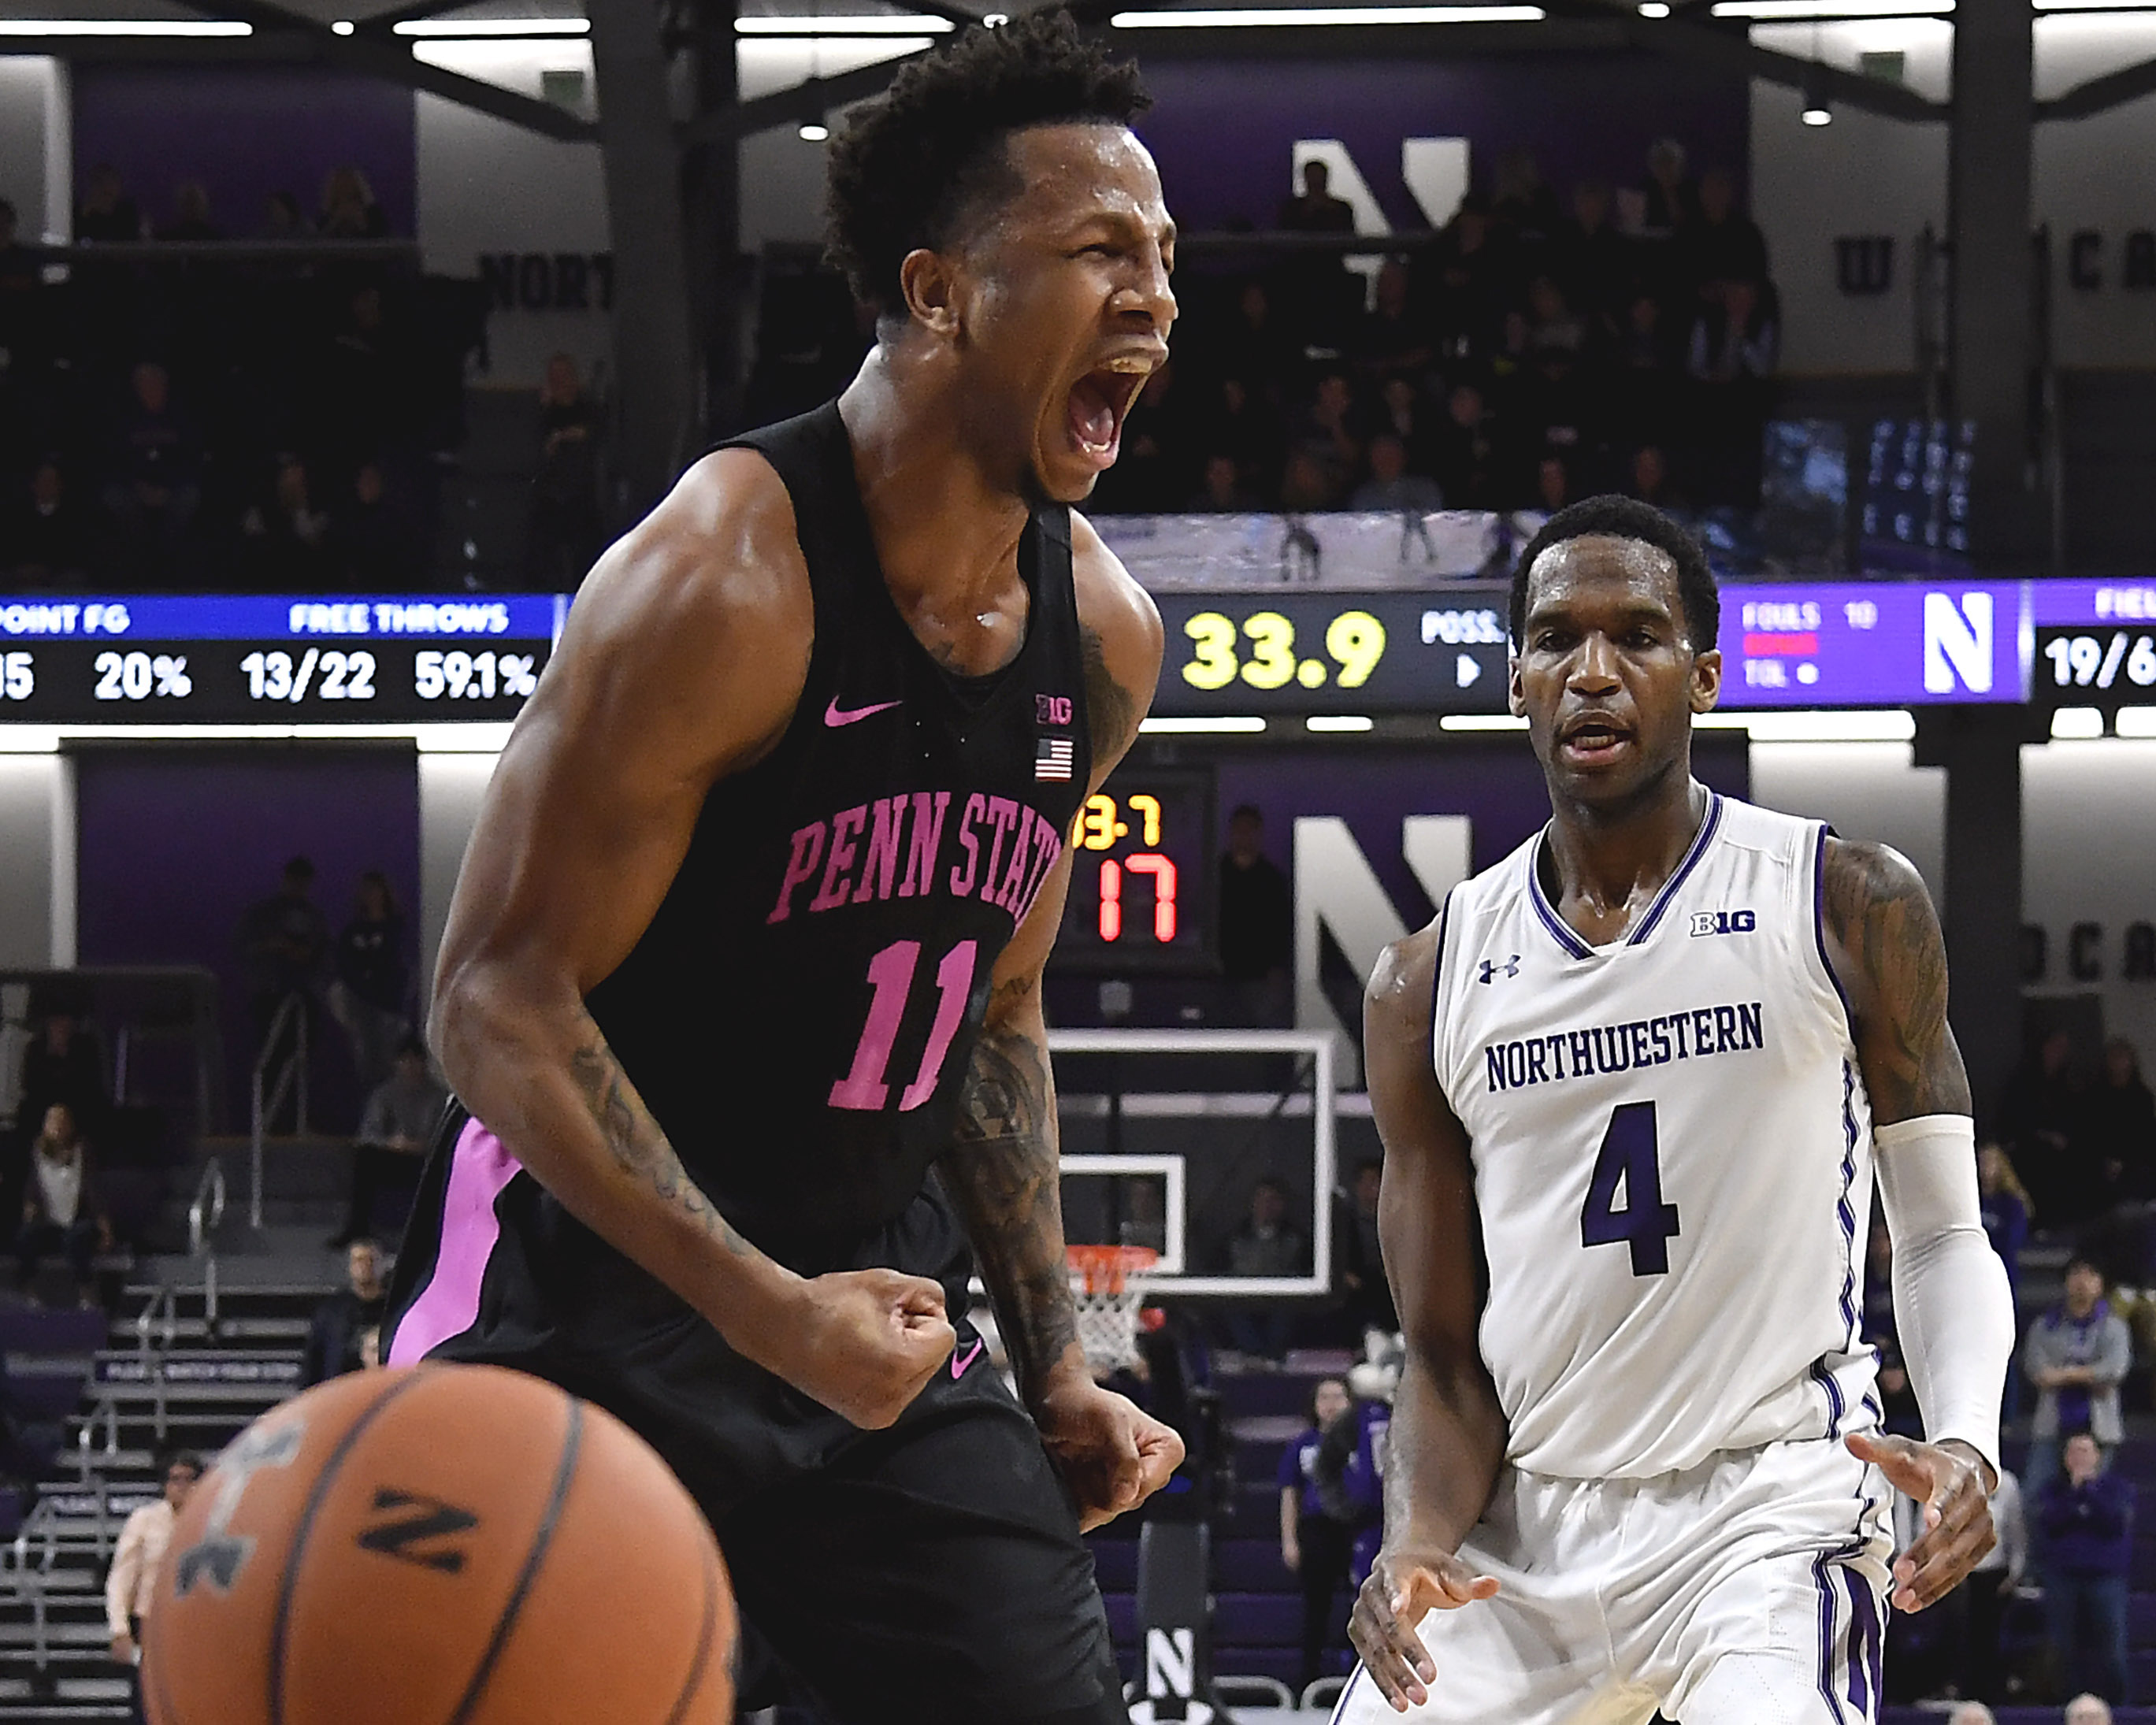 NCAA Basketball: Penn State at Northwestern